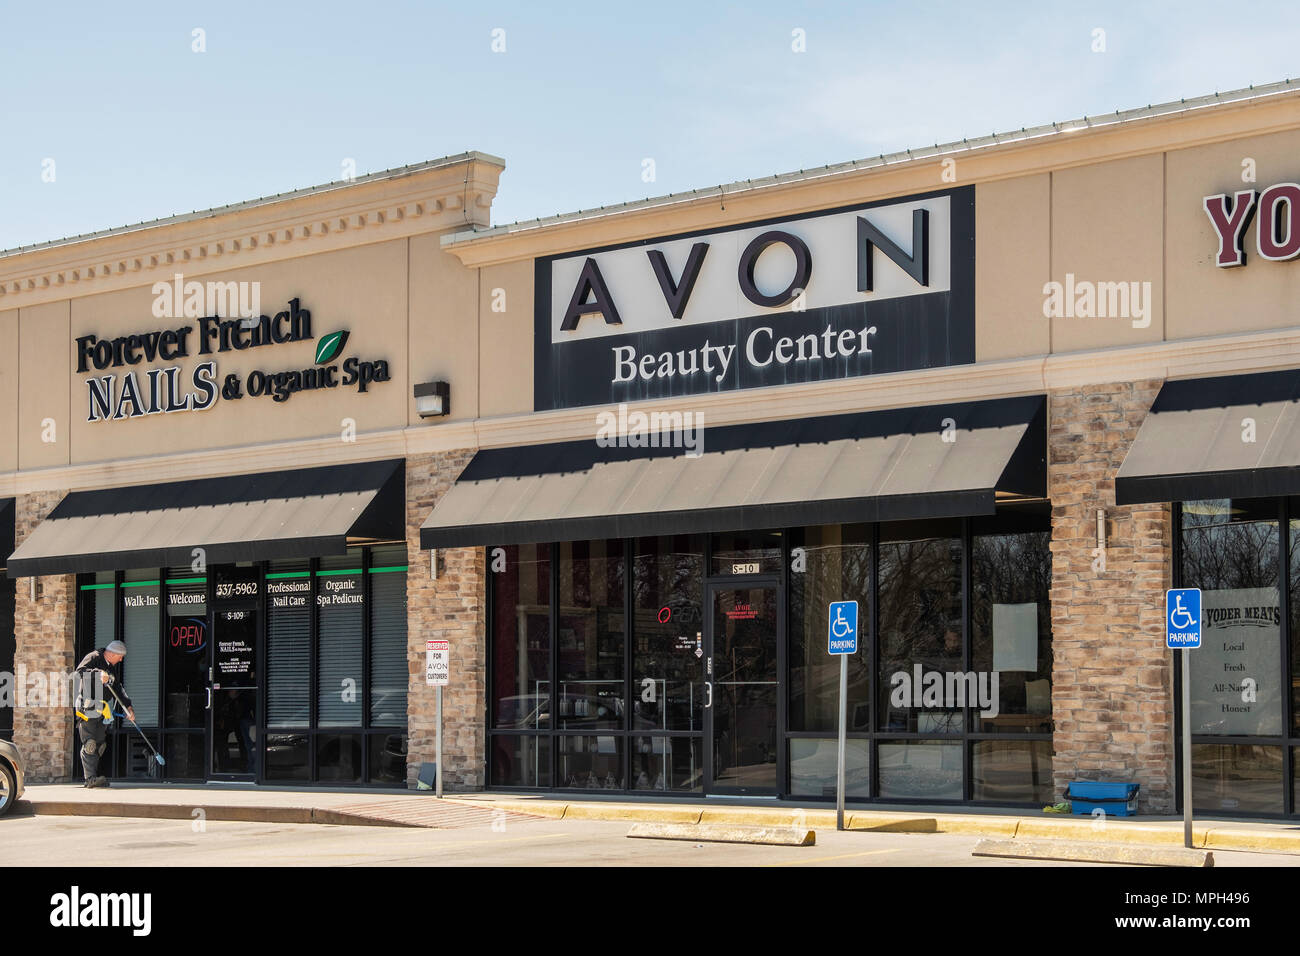 A strip mall containing Avon Beauty Center and Forever